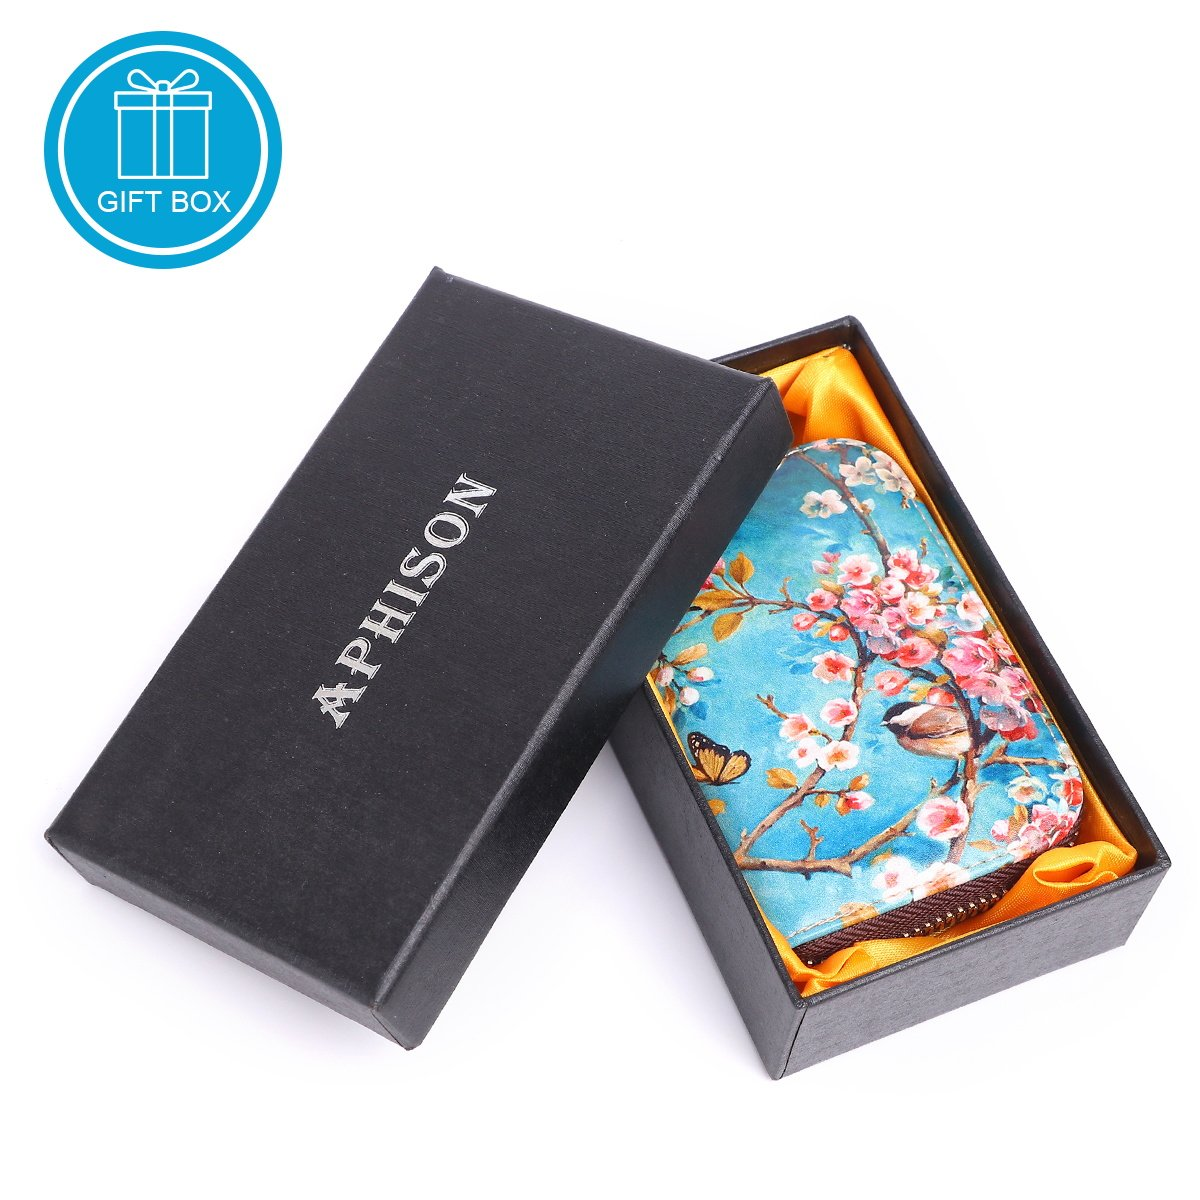 APHISON RFID Credit Card Holder Wallets for Women Leather Cartoon Patterns Zipper Card Case for Ladies Girls/Gift Box 010 by APHISON (Image #7)